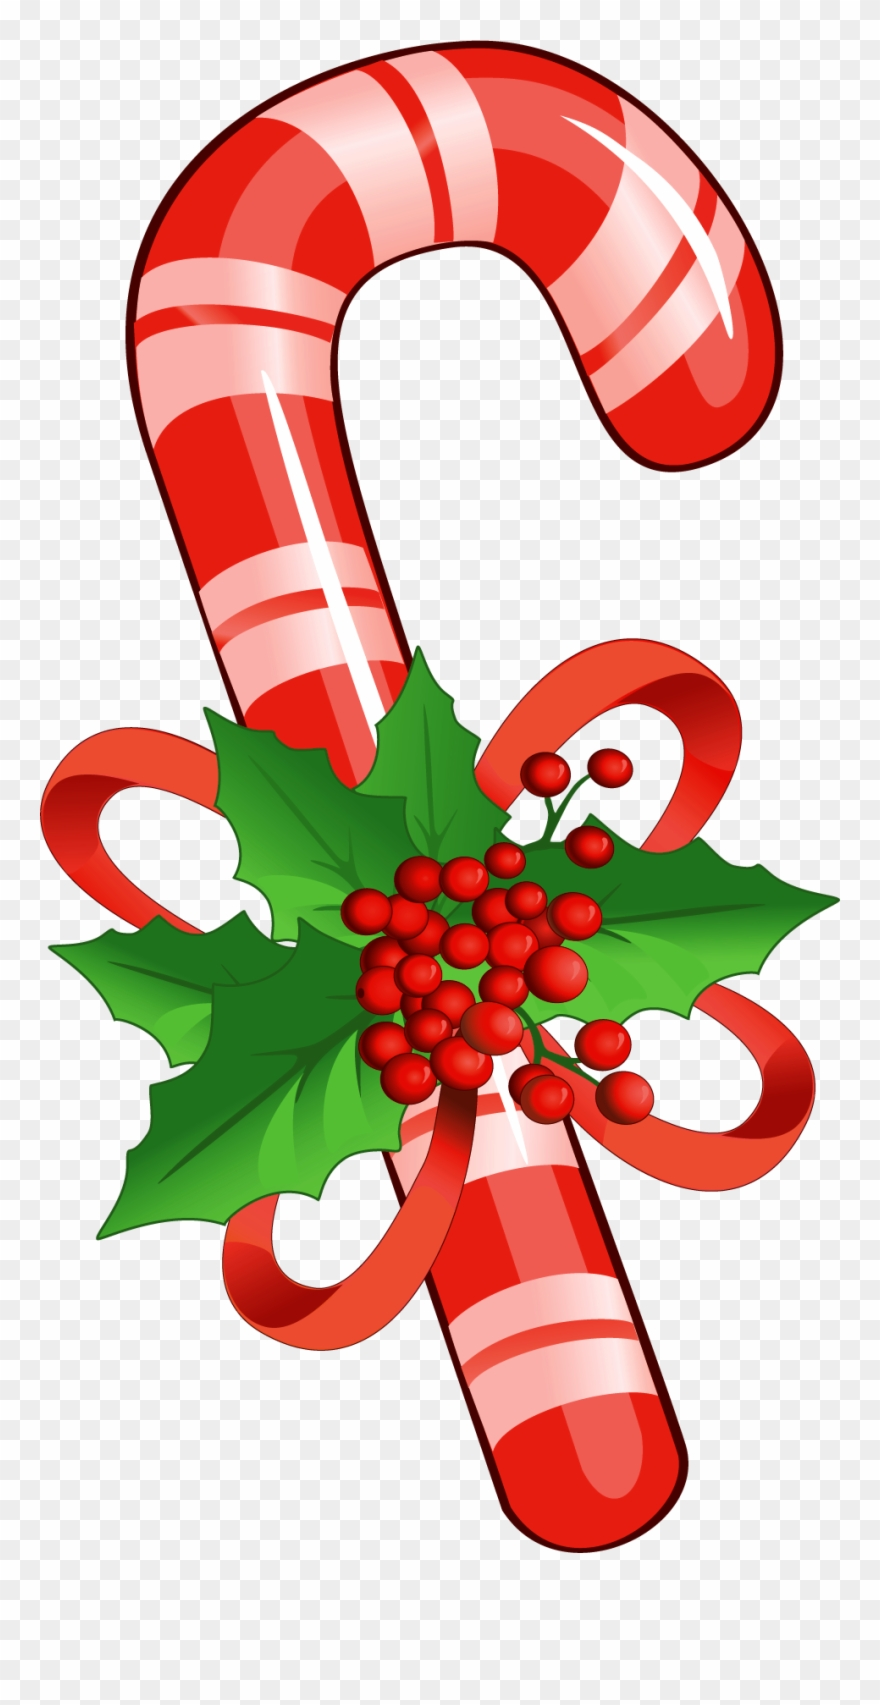 Candy Cane Clipart Png Google Search Library Clipart.